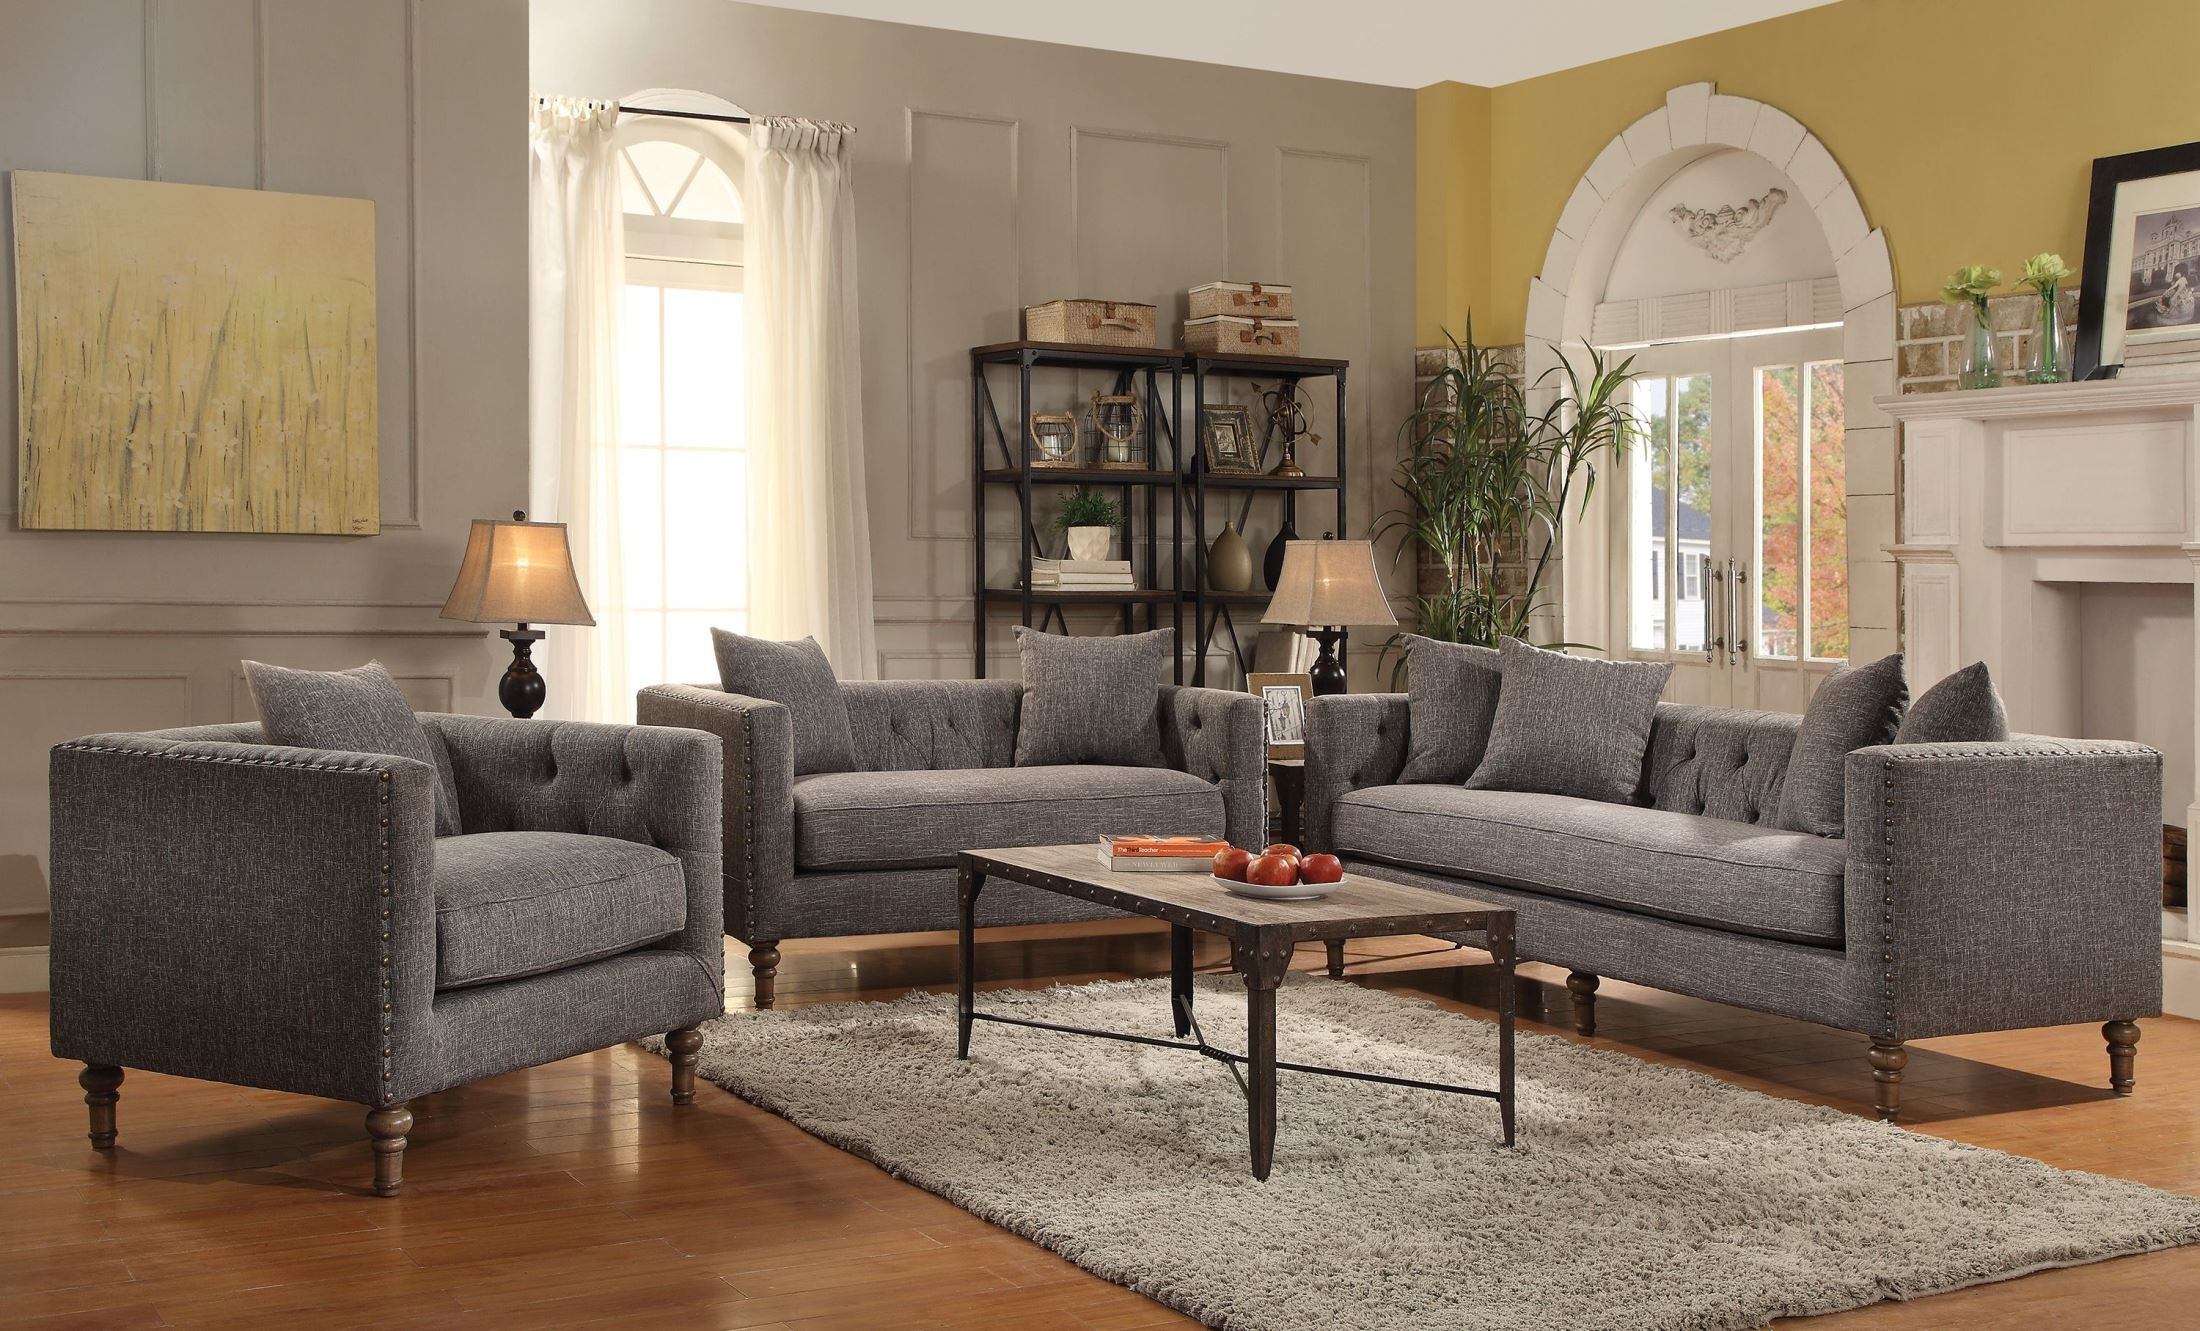 Furniture For Living Rooms: Ellery Grey Living Room Set From Coaster (505771